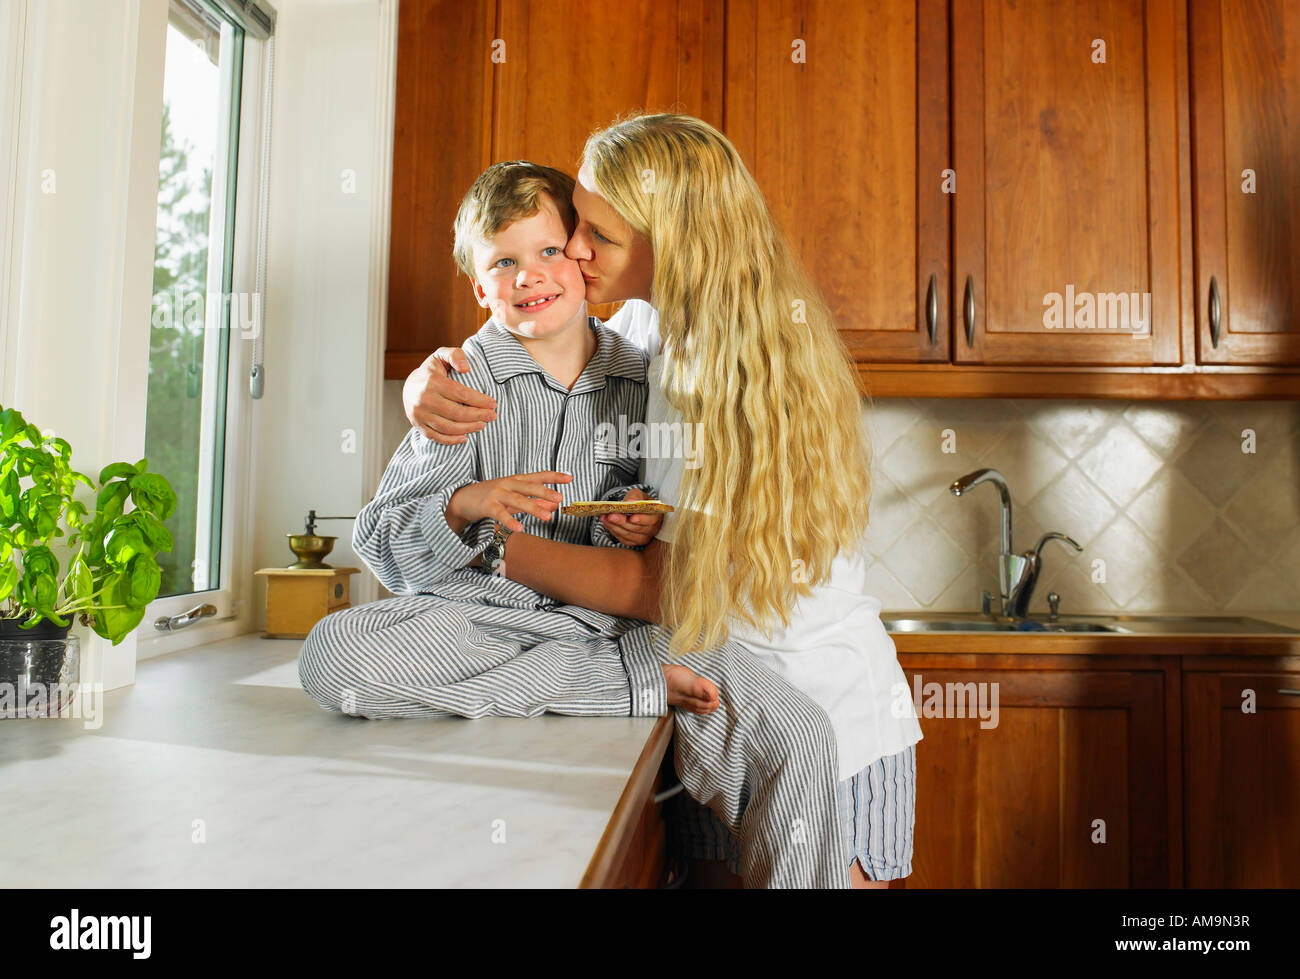 Woman kissing young boy holding sandwich in kitchen. - Stock Image